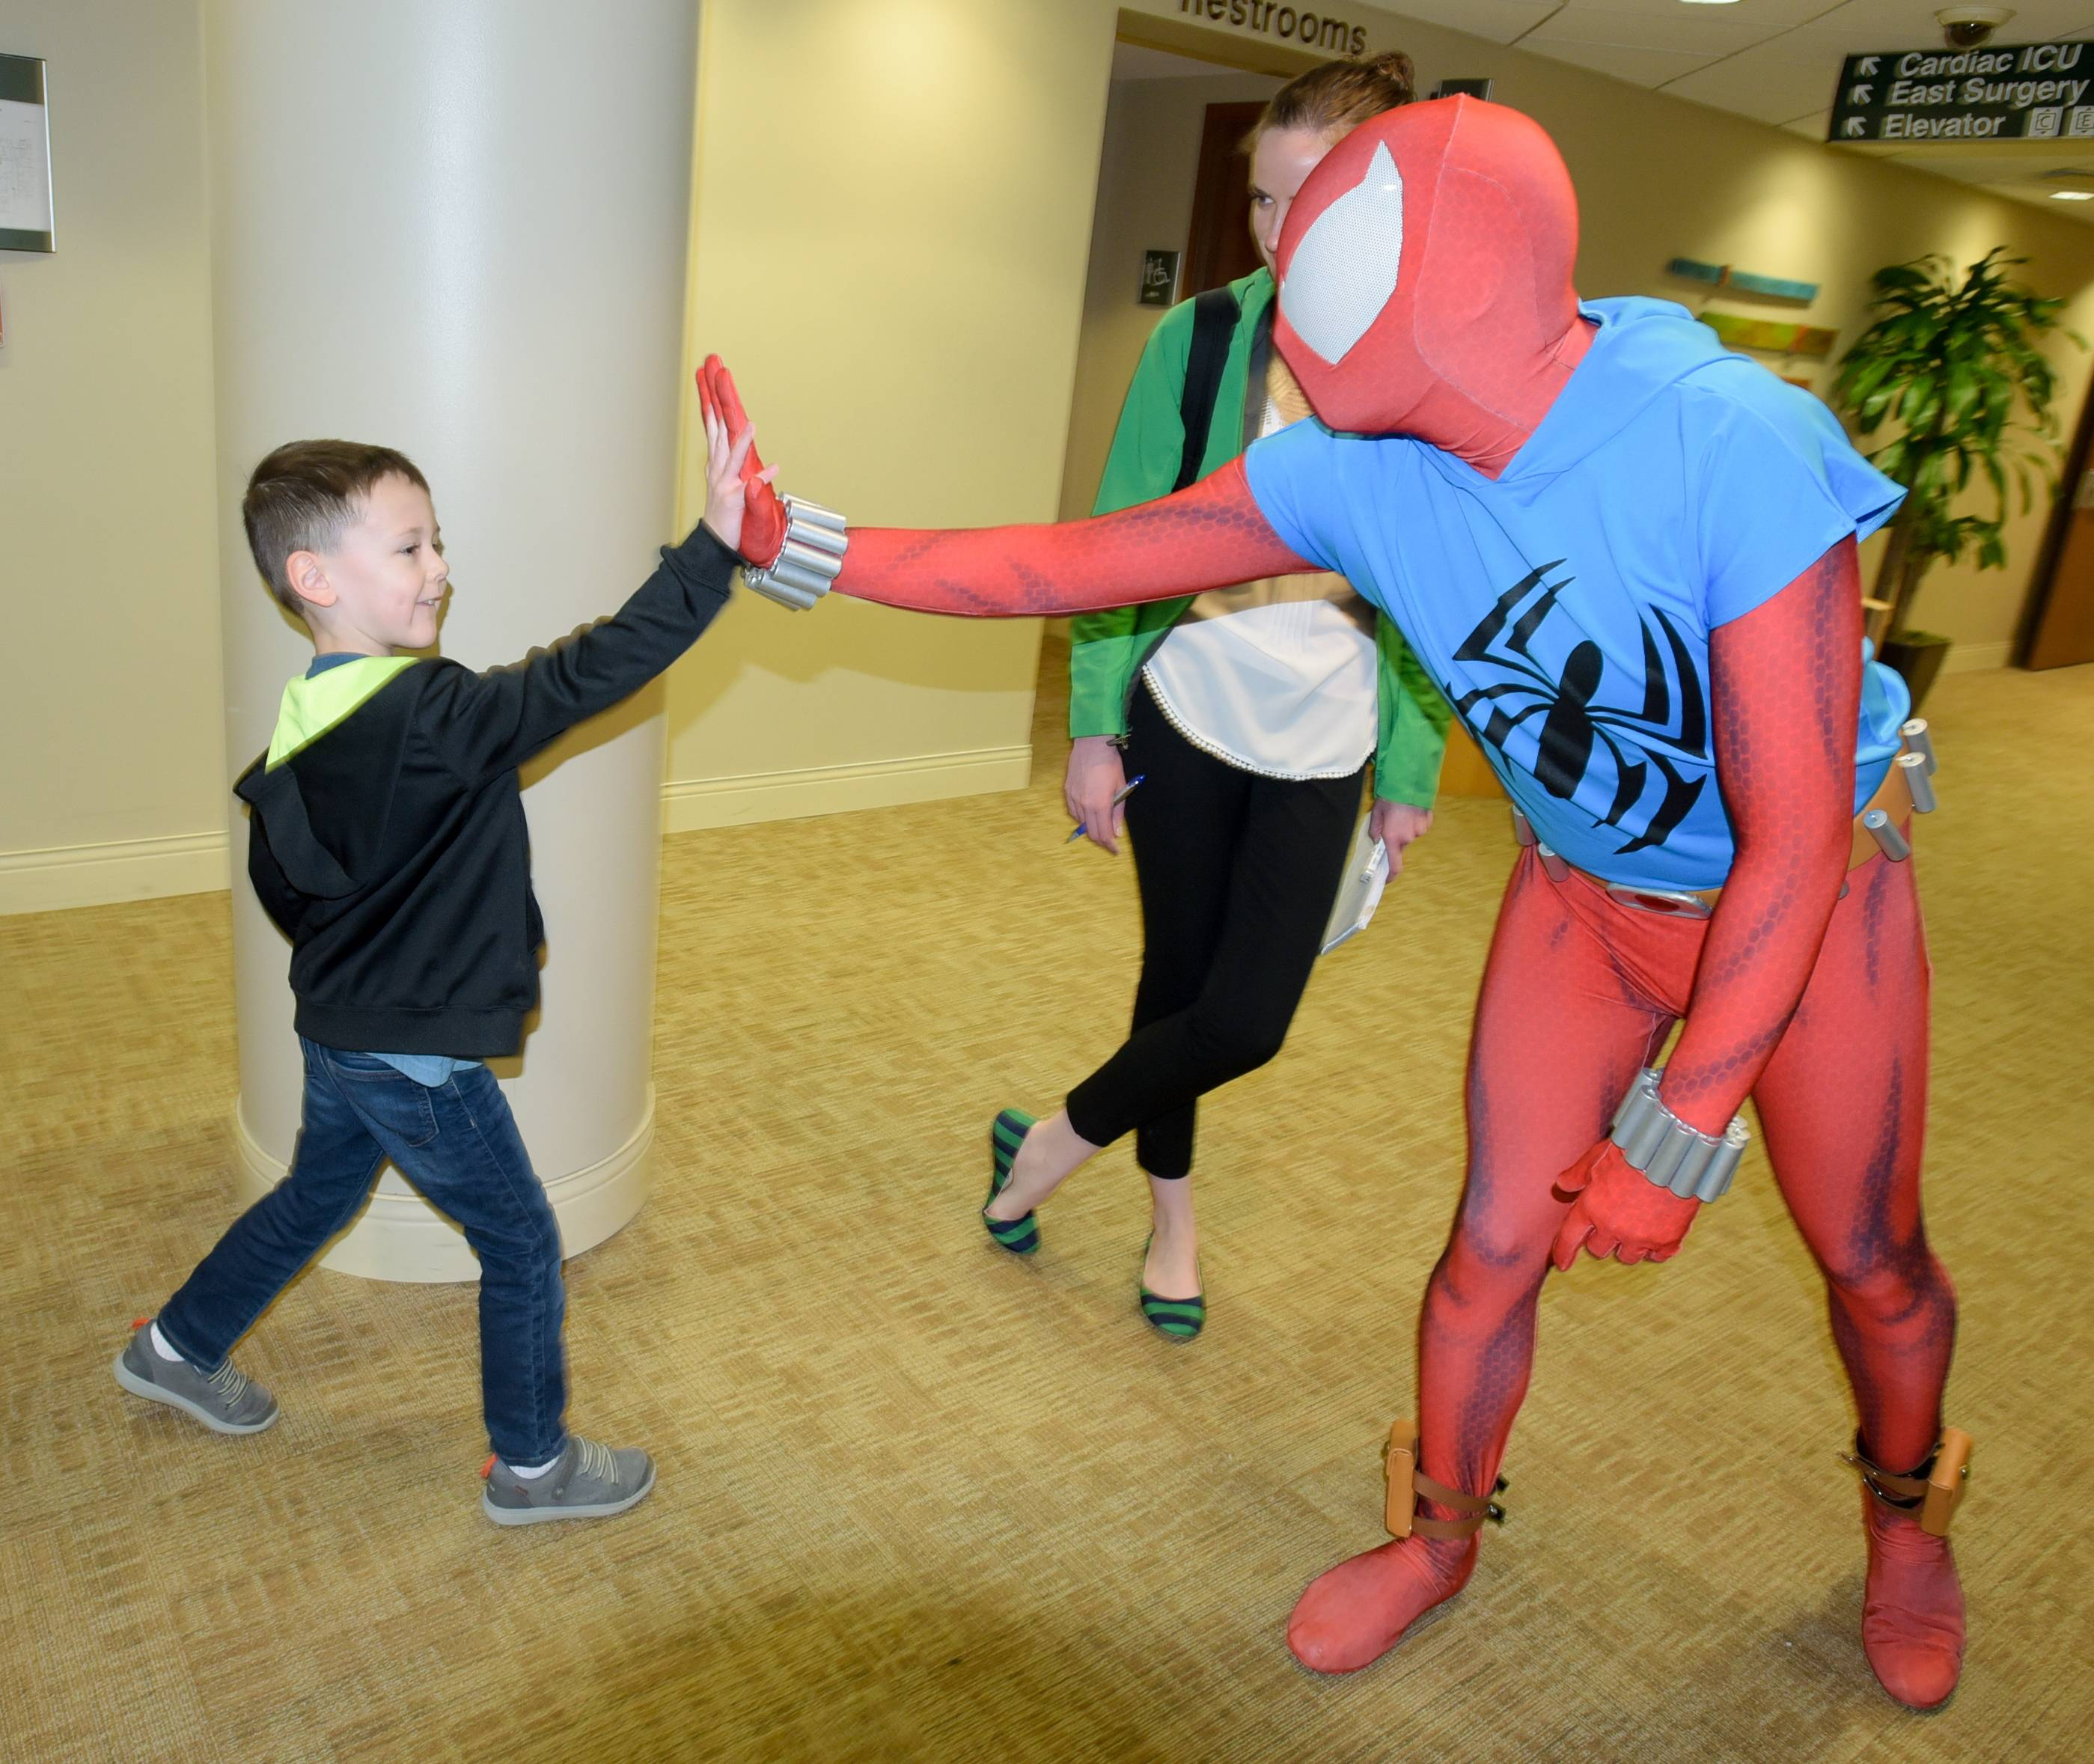 Eli Shambling, of Plainfield, gives Spider-Man a high-five as Northwestern Medicine Central DuPage Hospital celebrates Superhero Day.